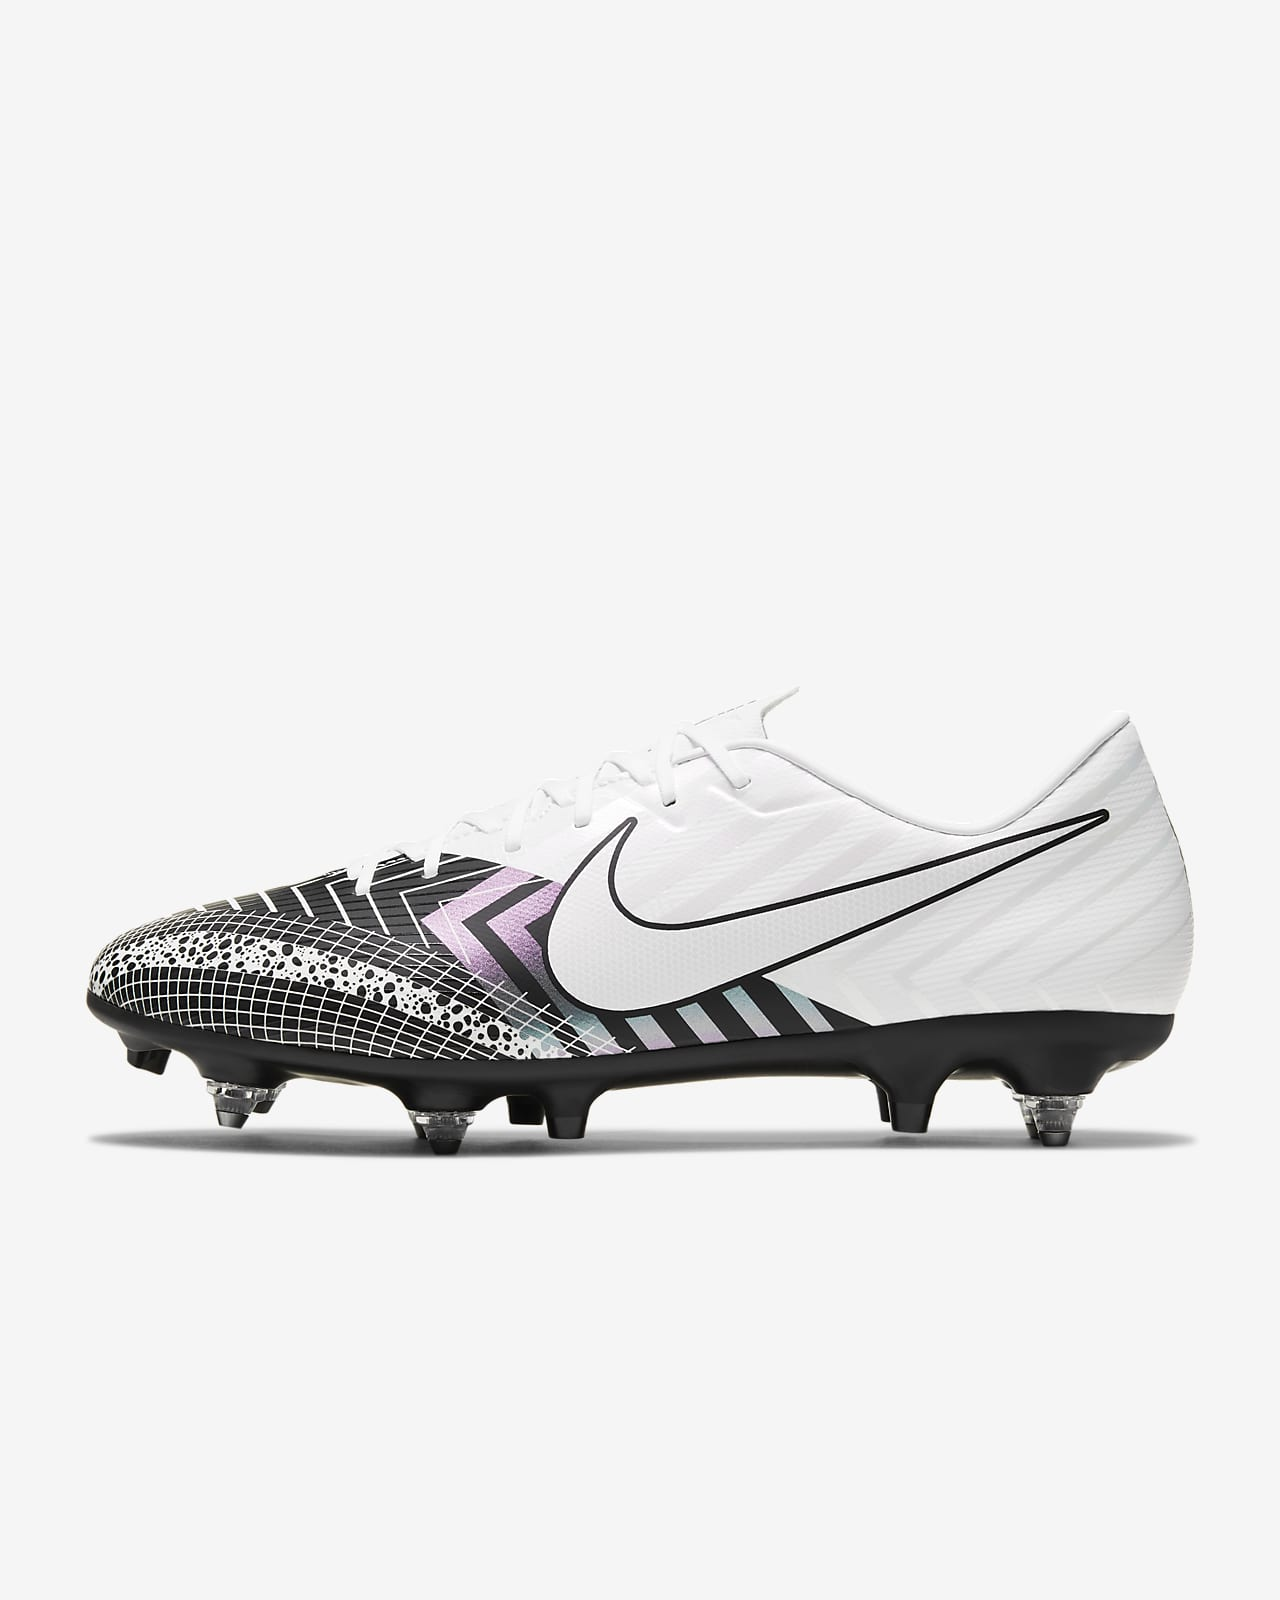 Nike Mercurial Vapor 13 Academy MDS SG-PRO Anti-Clog Traction Soft-Ground Football Boot